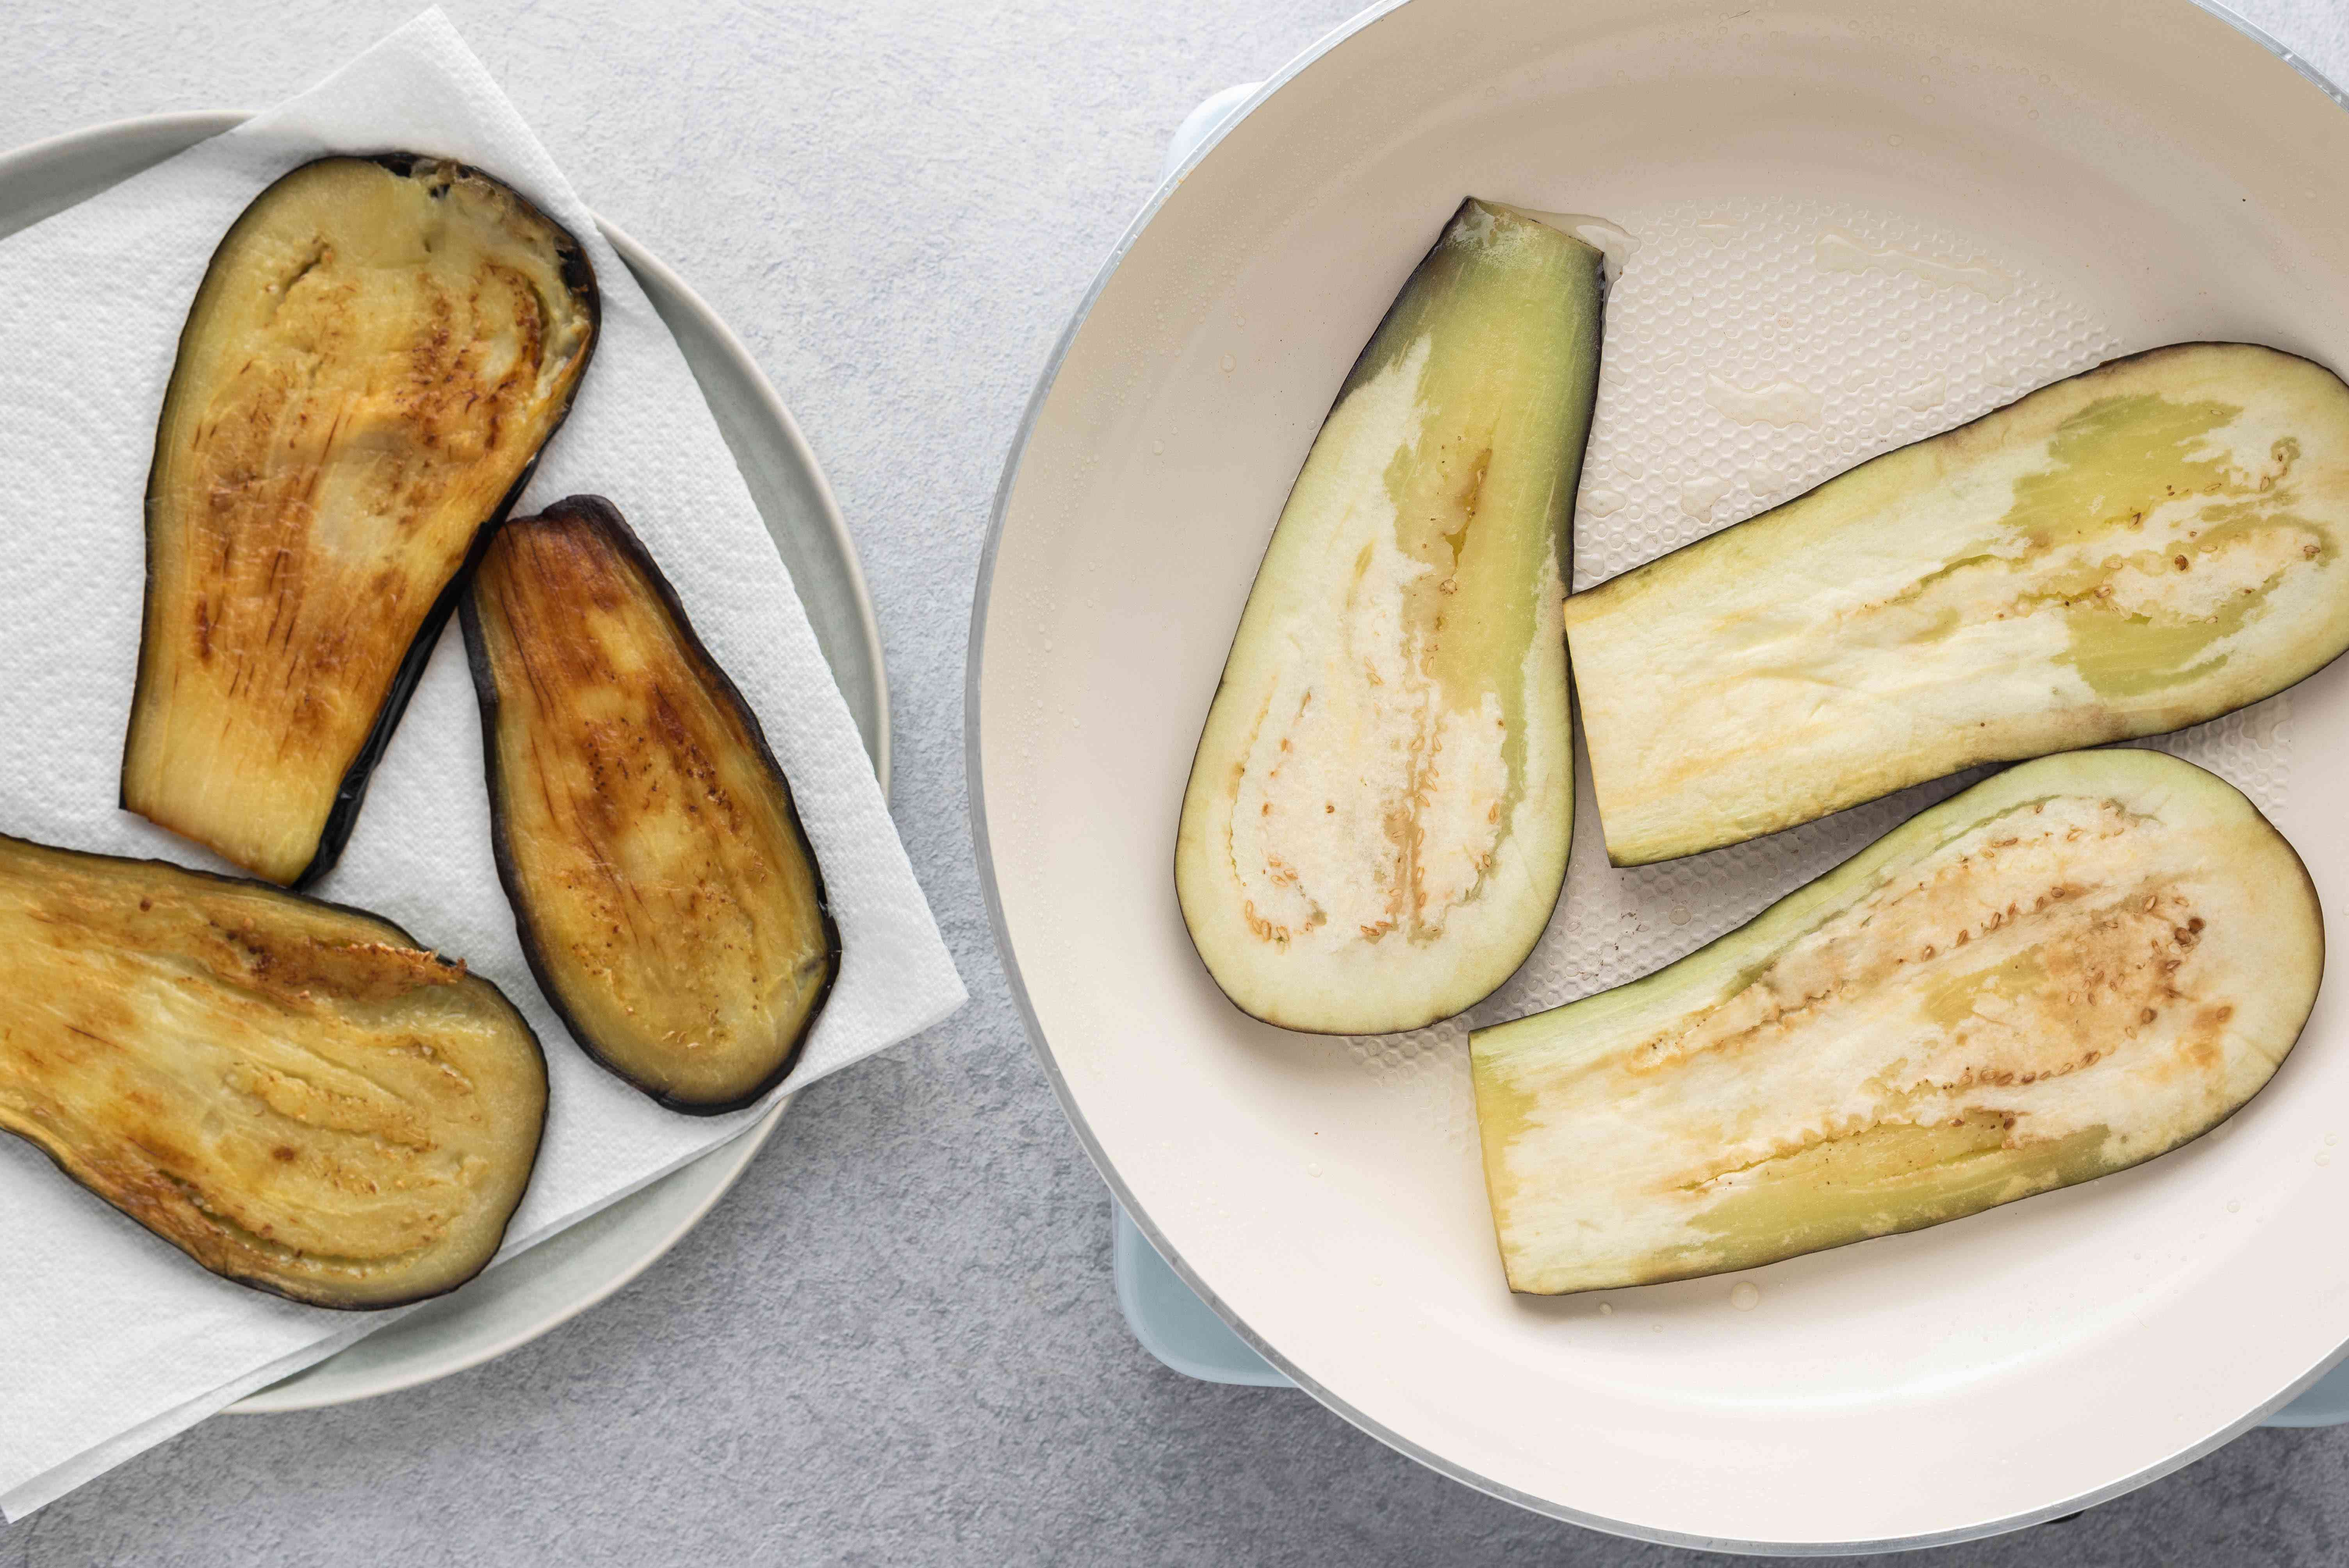 eggplant cooking in a frying pan, cooked eggplant on a paper towel lined plate